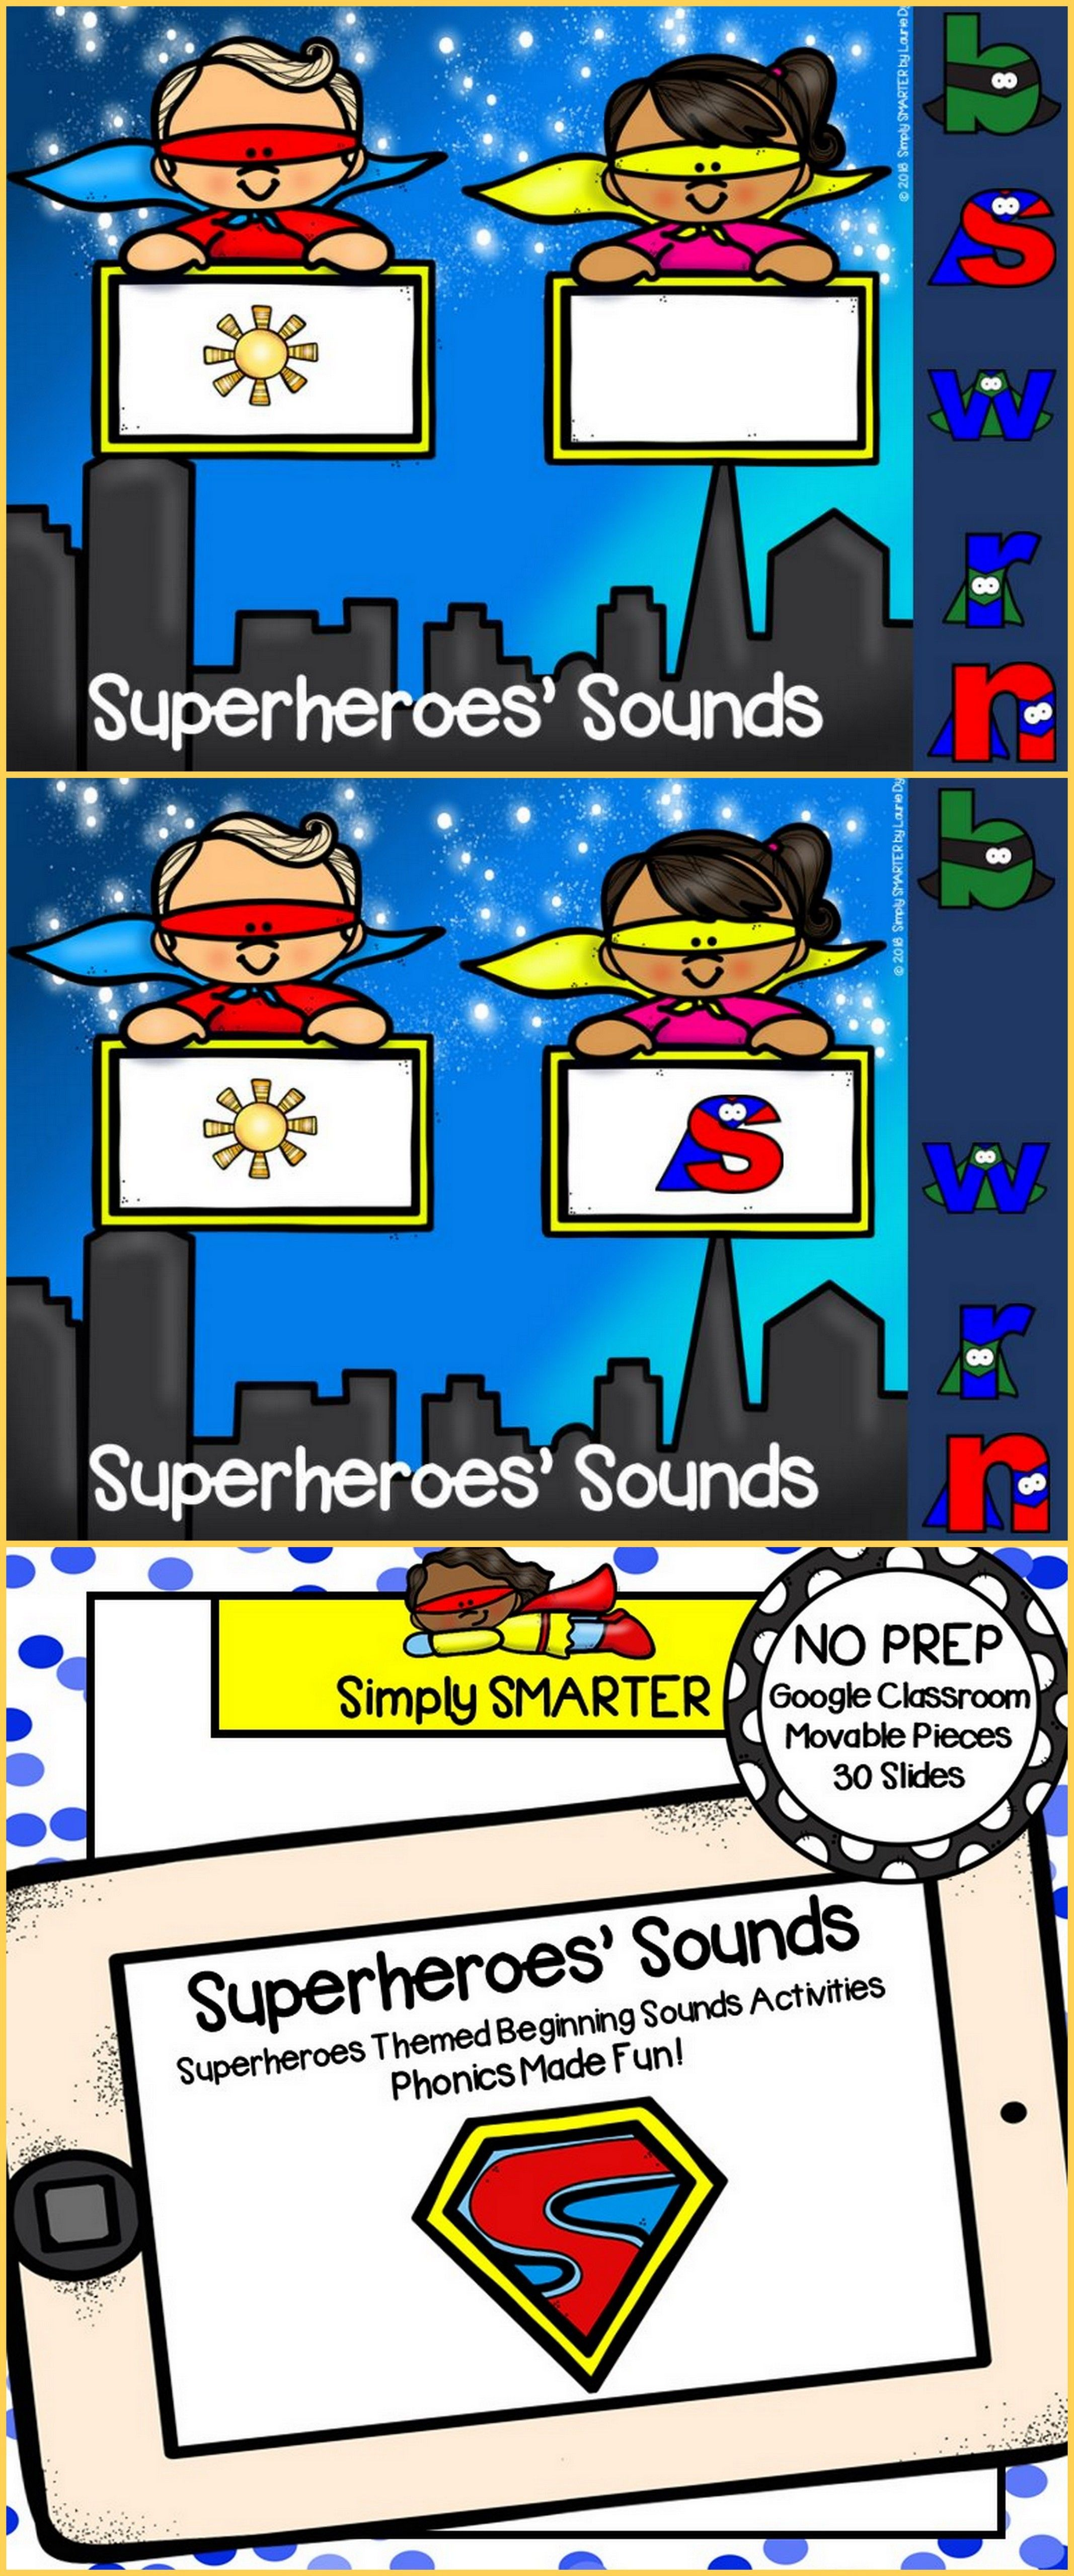 Superheroes Themed Beginning Sound Activities For